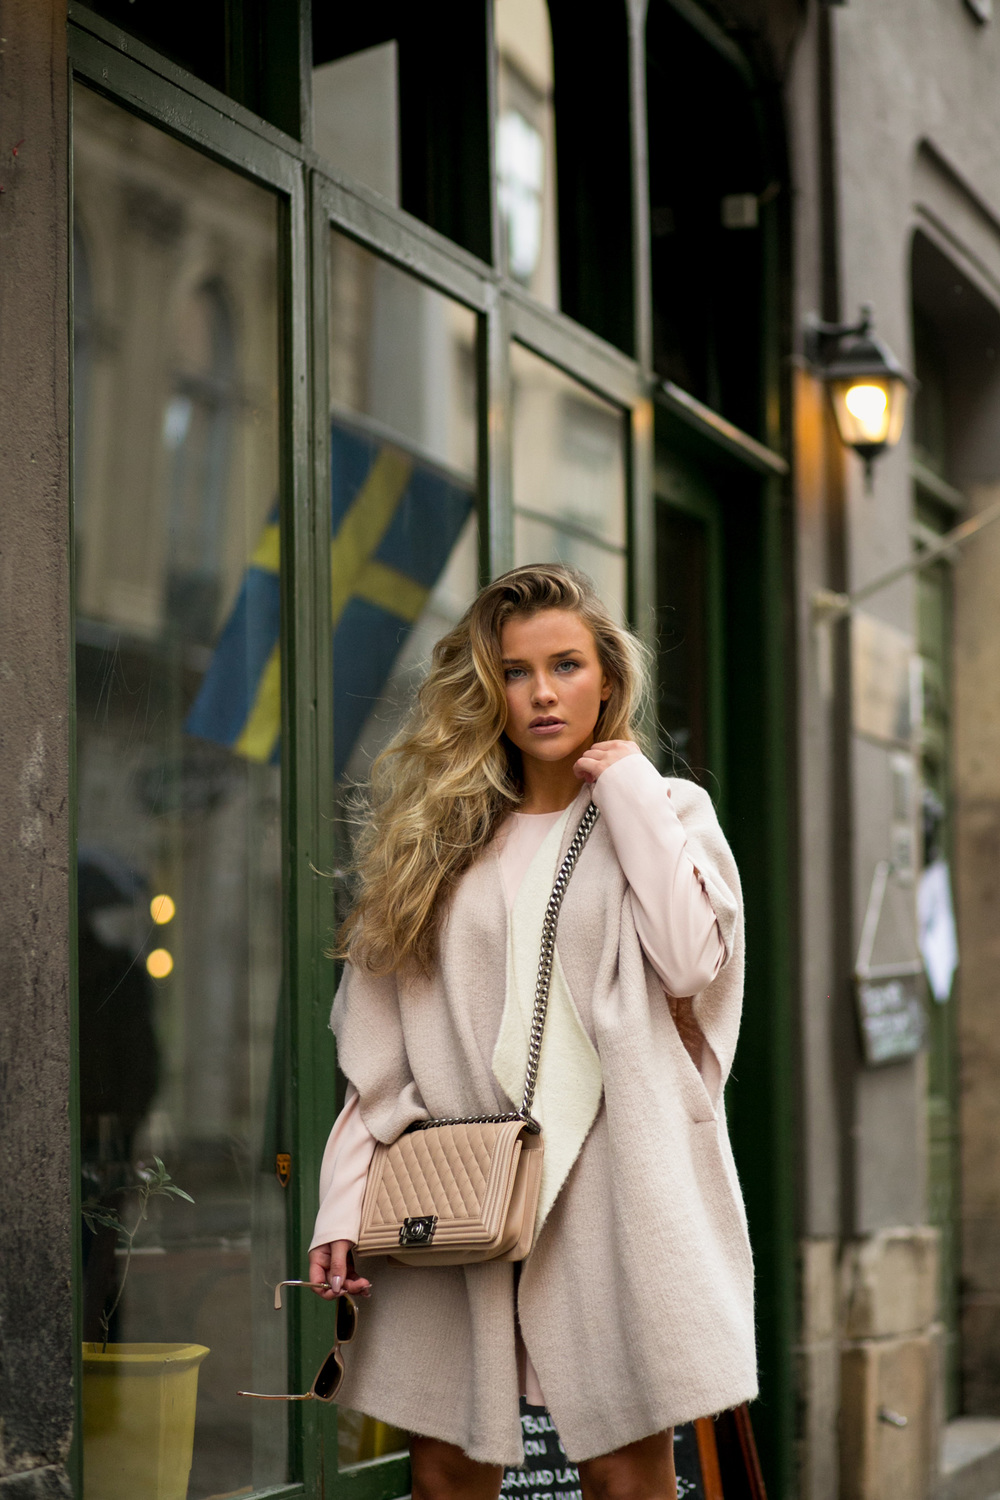 008-stockholm-blogger-fashion.jpg